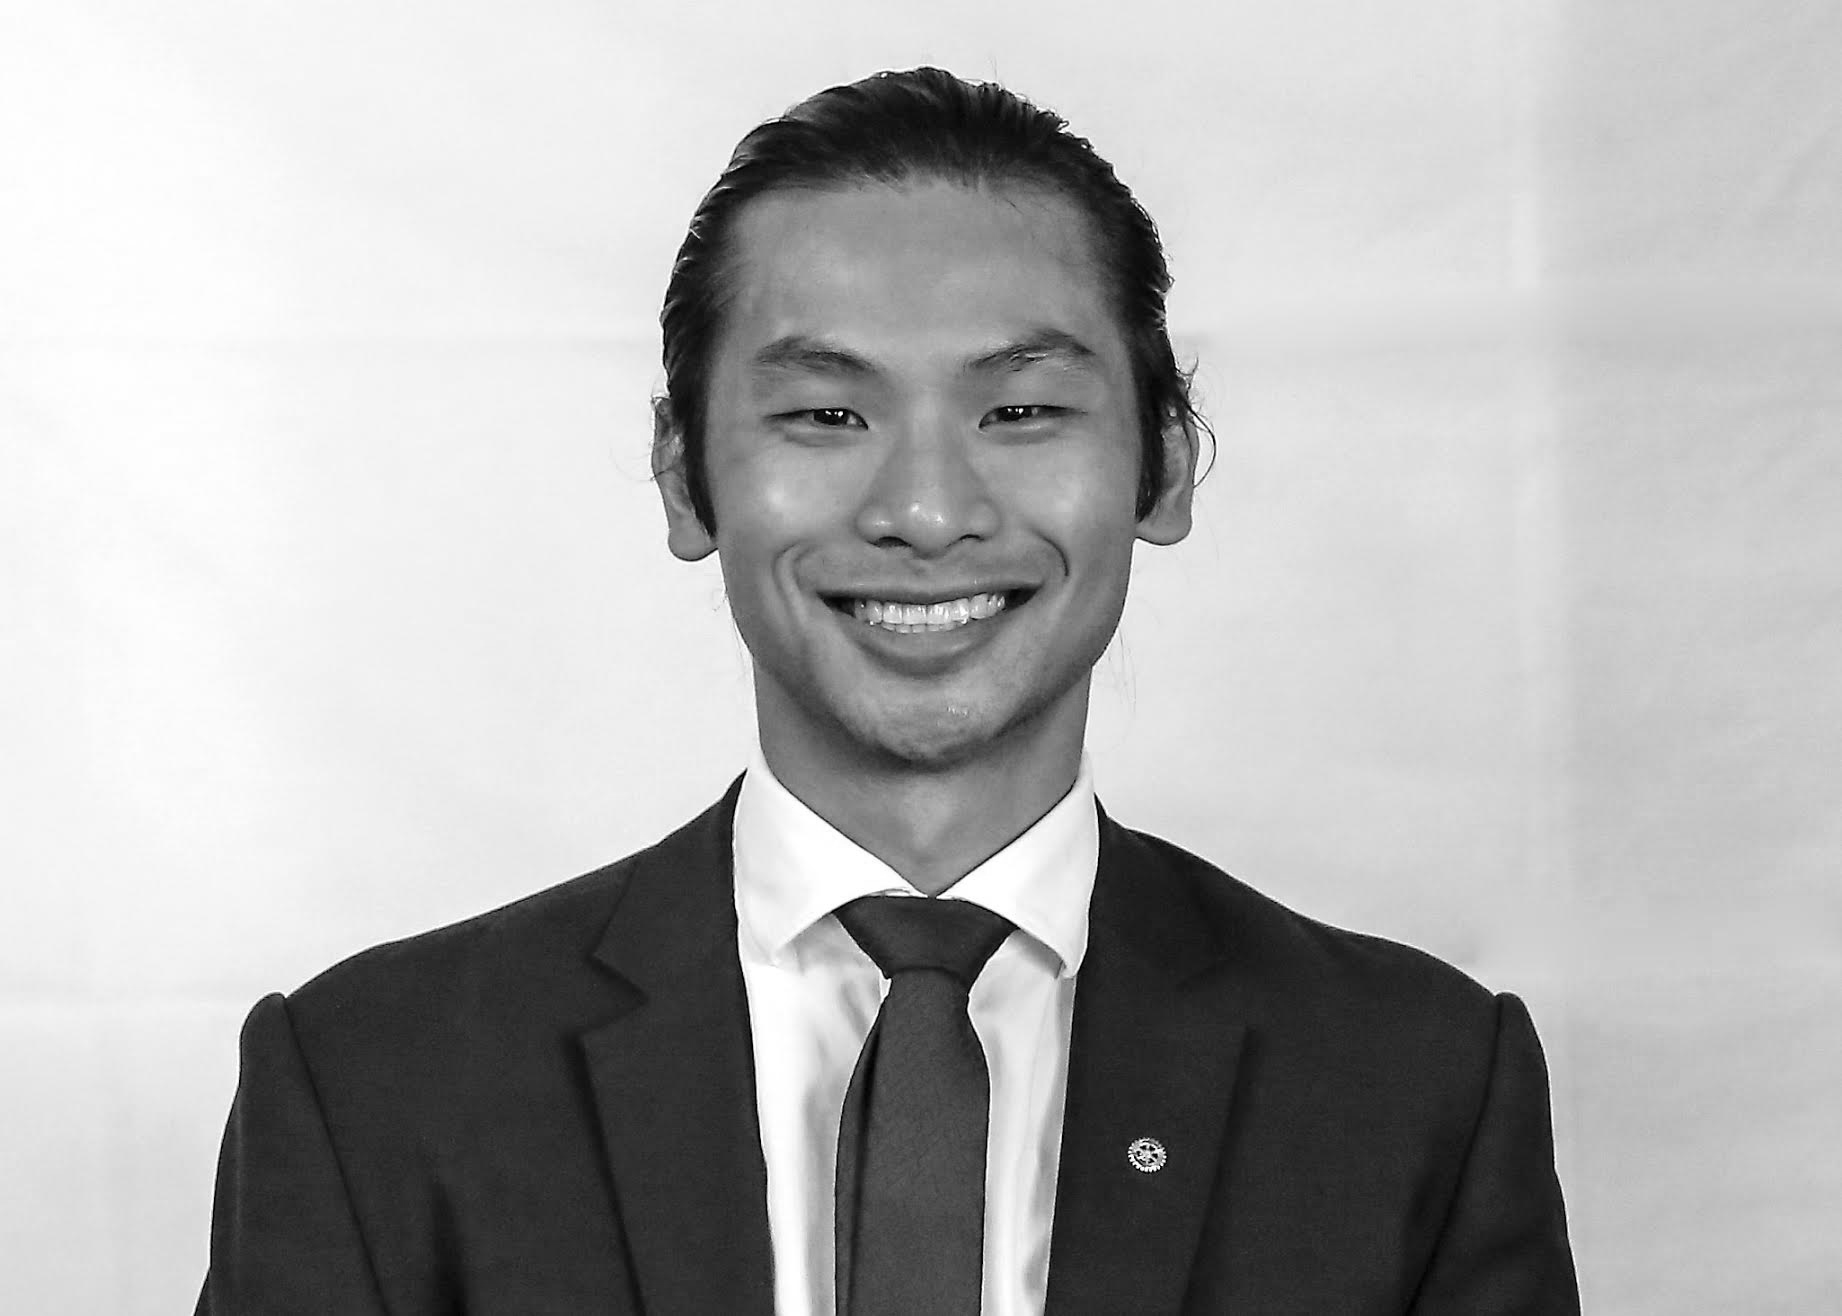 dan tang, PRESIDENT 2017-18  Dan has been a member of the Chartered Accountants Australia and New Zealand (CAANZ) since 2012. He joined the Rotary Club of Collingwood in 2014 with the aim of empowering individuals while making sustainable and lasting impacts within the community.  Dan has 10 years experience within the banking and finance industry, the public service, and has volunteered at Health Australia Tanzania (HAT) Inc. and the Victorian AIDS Council (VAC).   Dan seeks to build capability in others through direct engagement with people in need. He is an avid supporter of building partnerships and collaborating with the individuals and organisations. He has a passion for youth and creative arts.